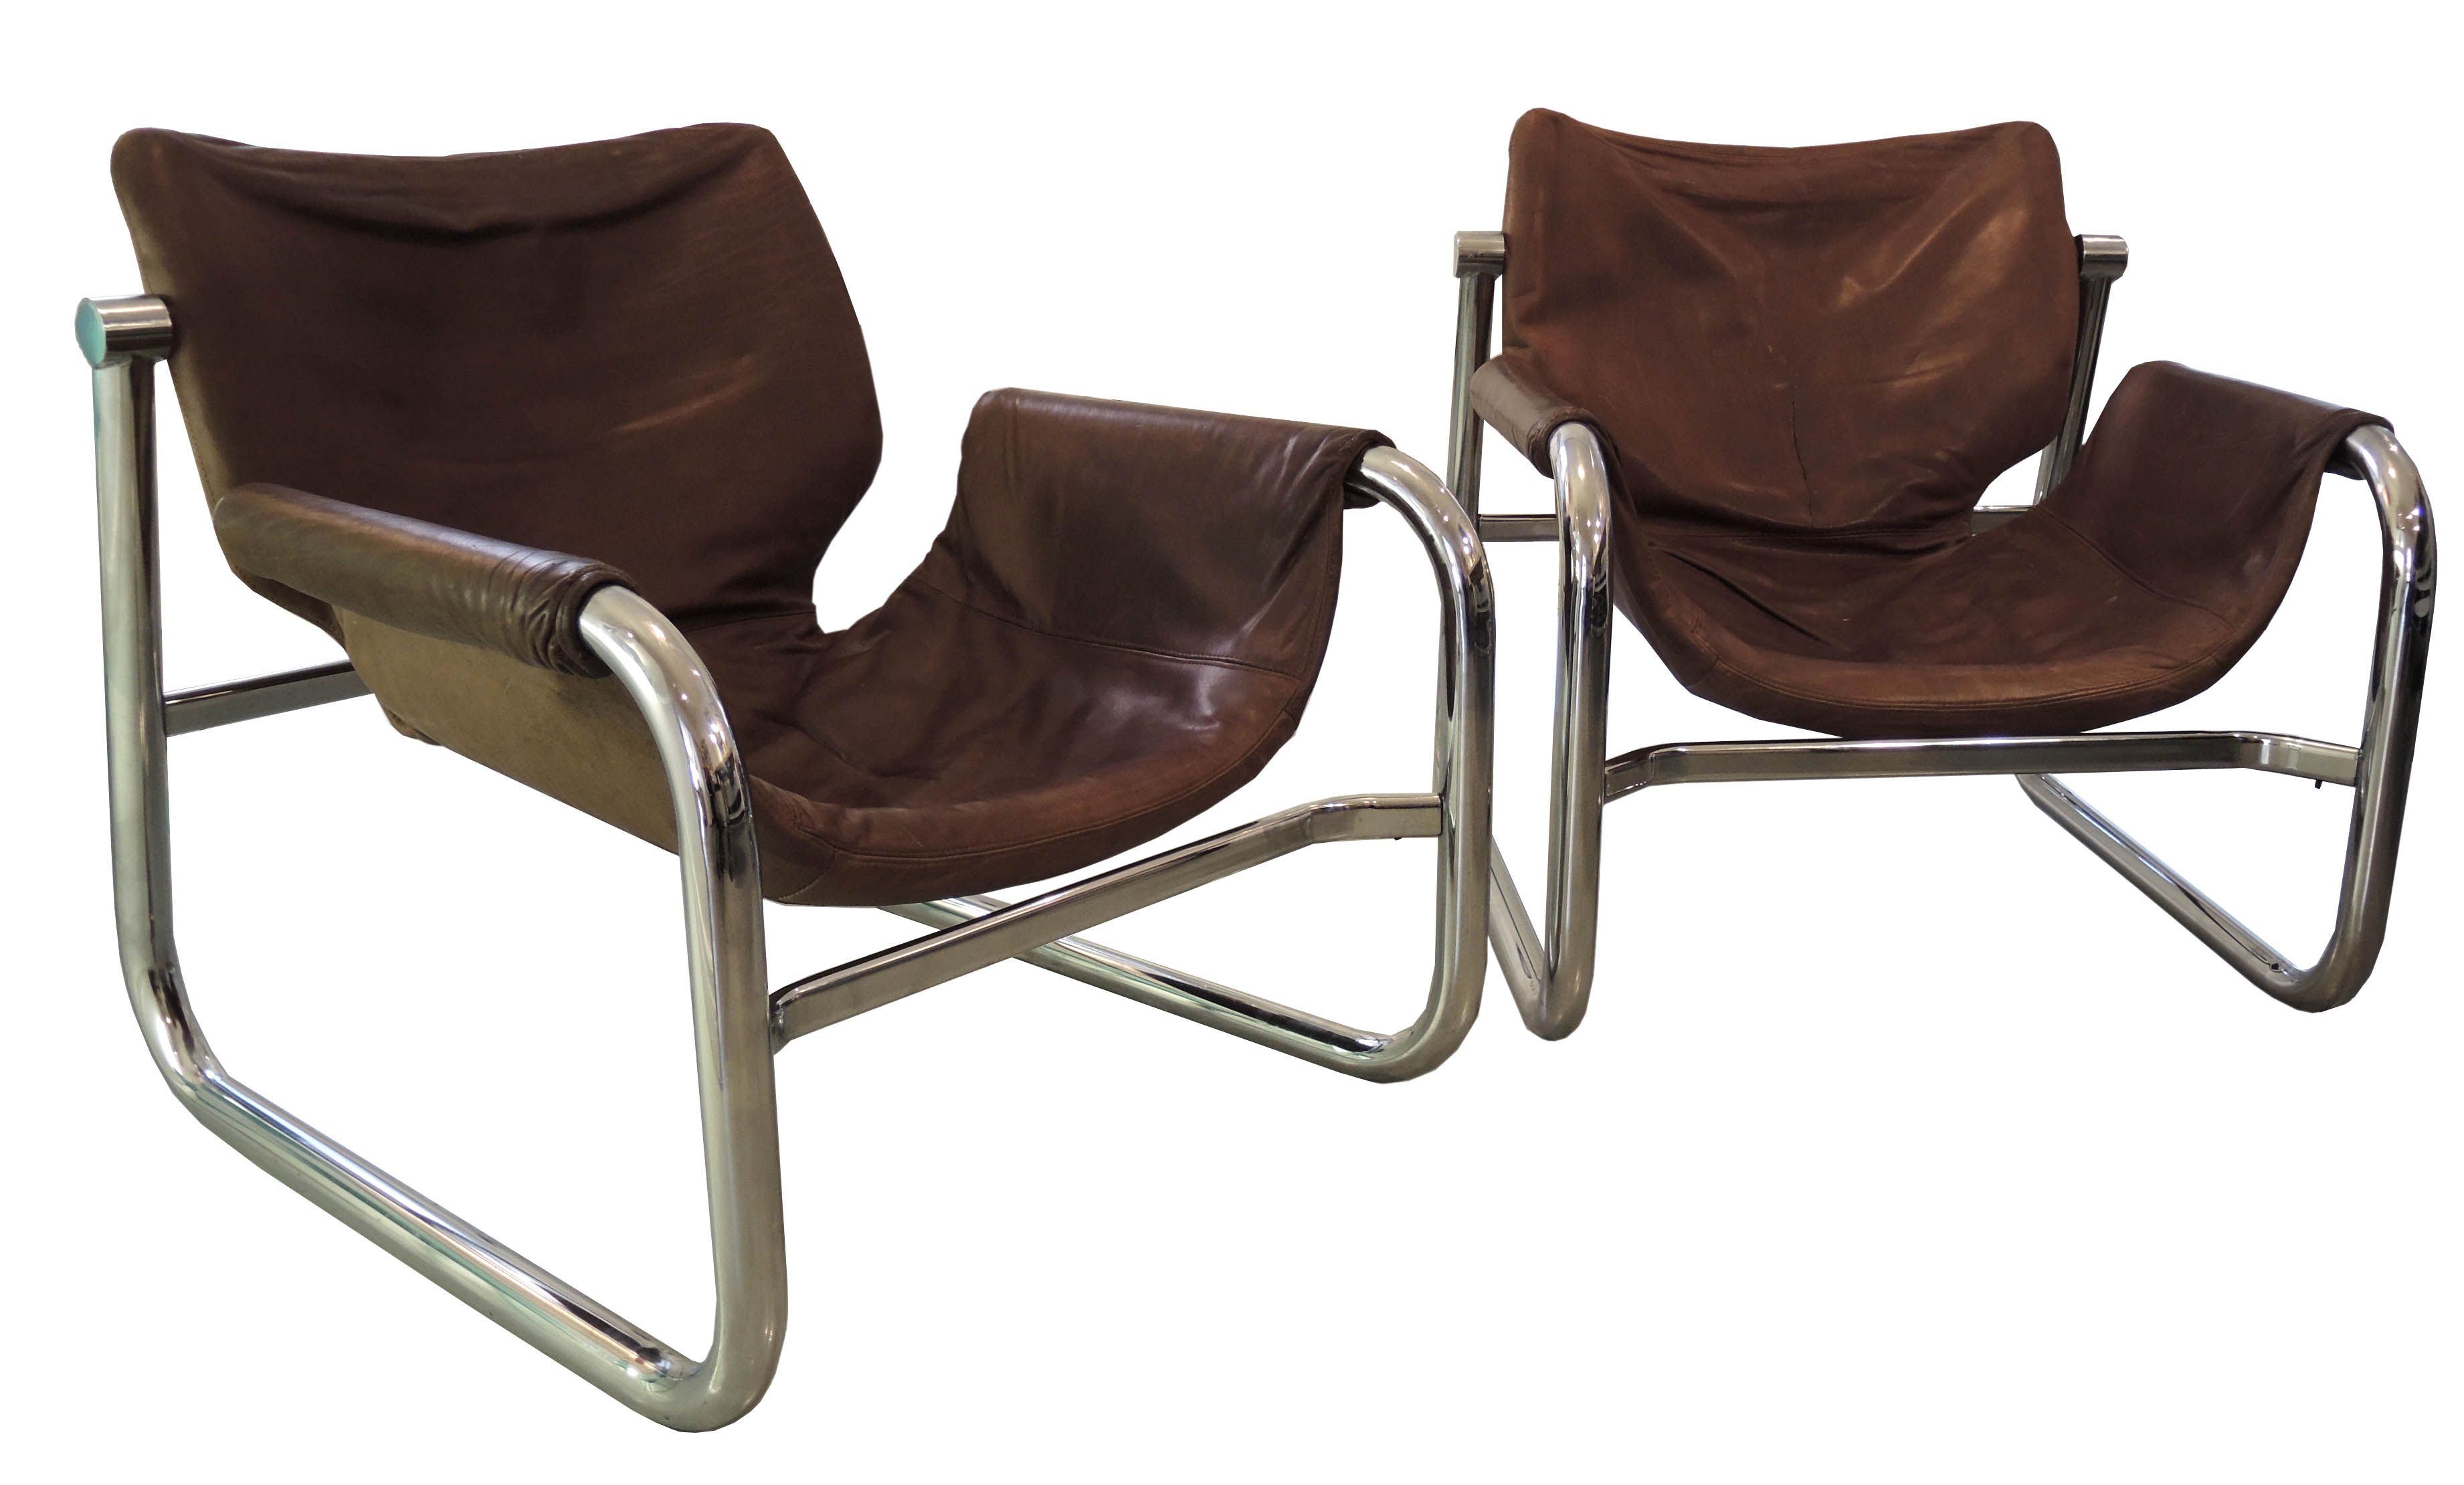 Maurice Prentice Burke Chrome And Leather Lounge Chairs For Arkana. 1970s.